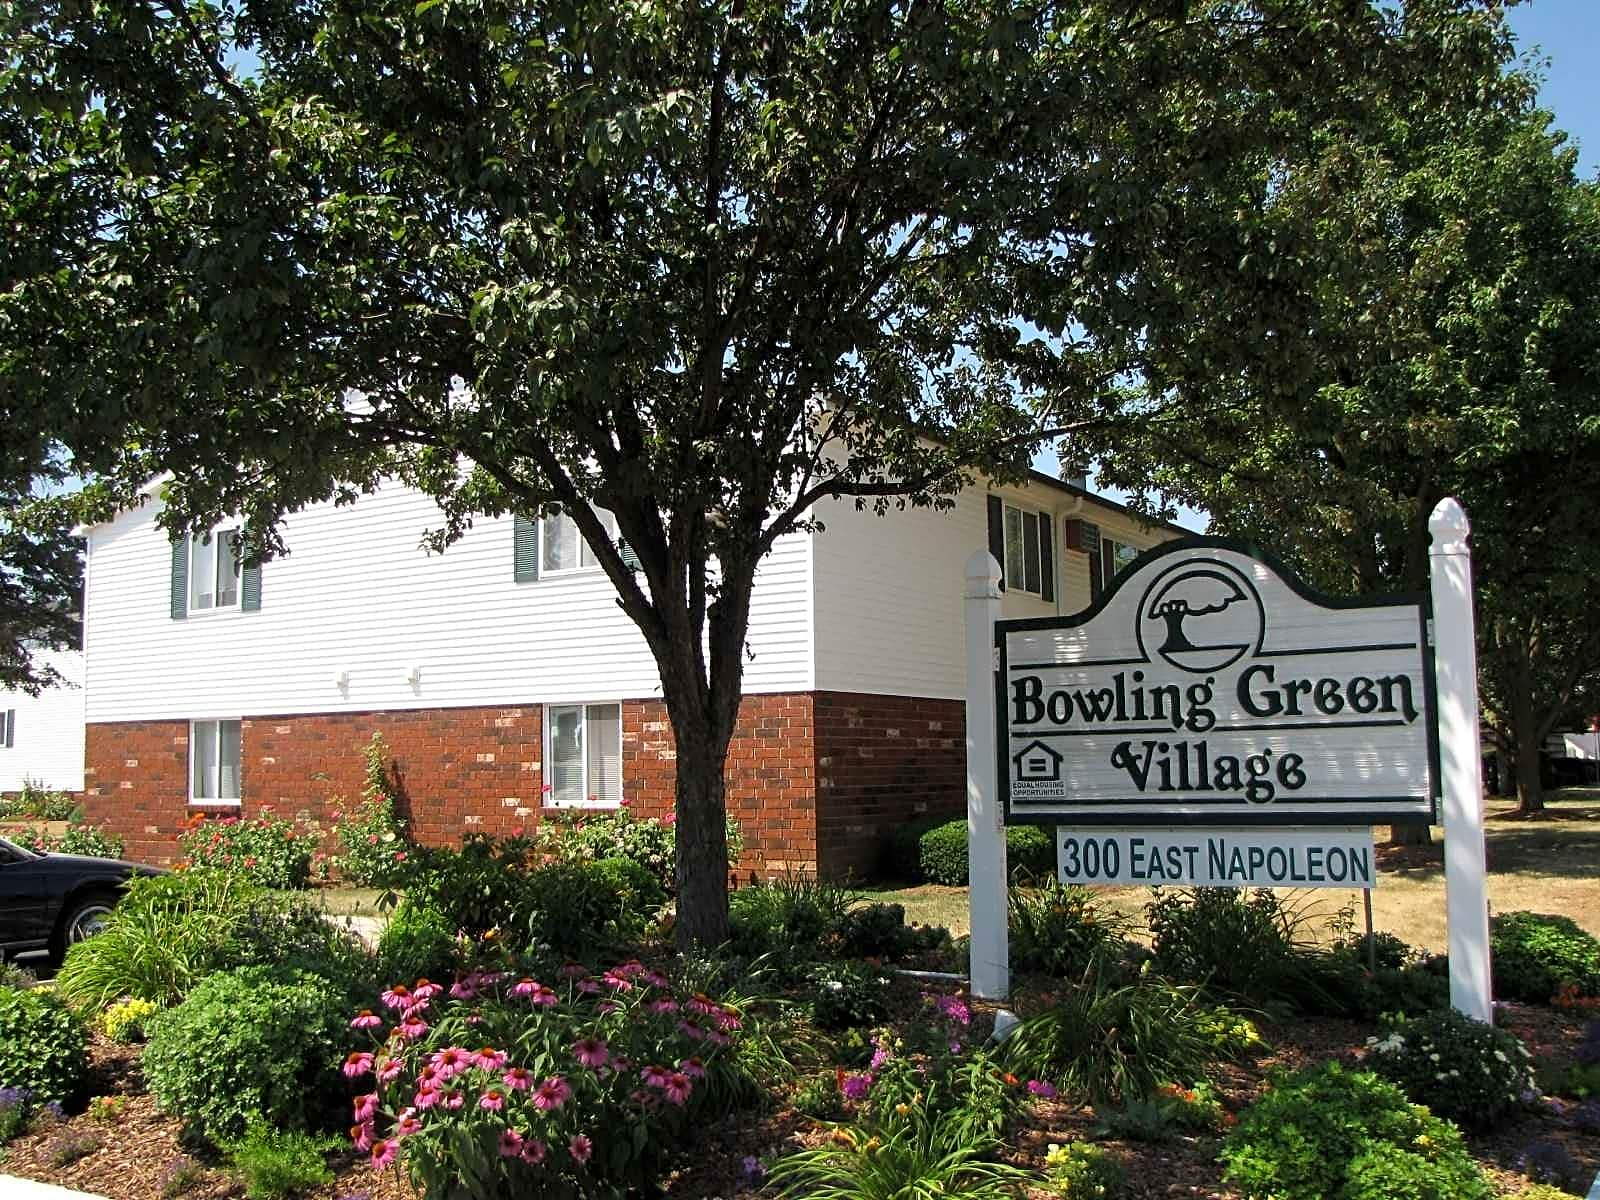 Apartments Near BGSU Bowling Green Village for Bowling Green State University Students in Bowling Green, OH